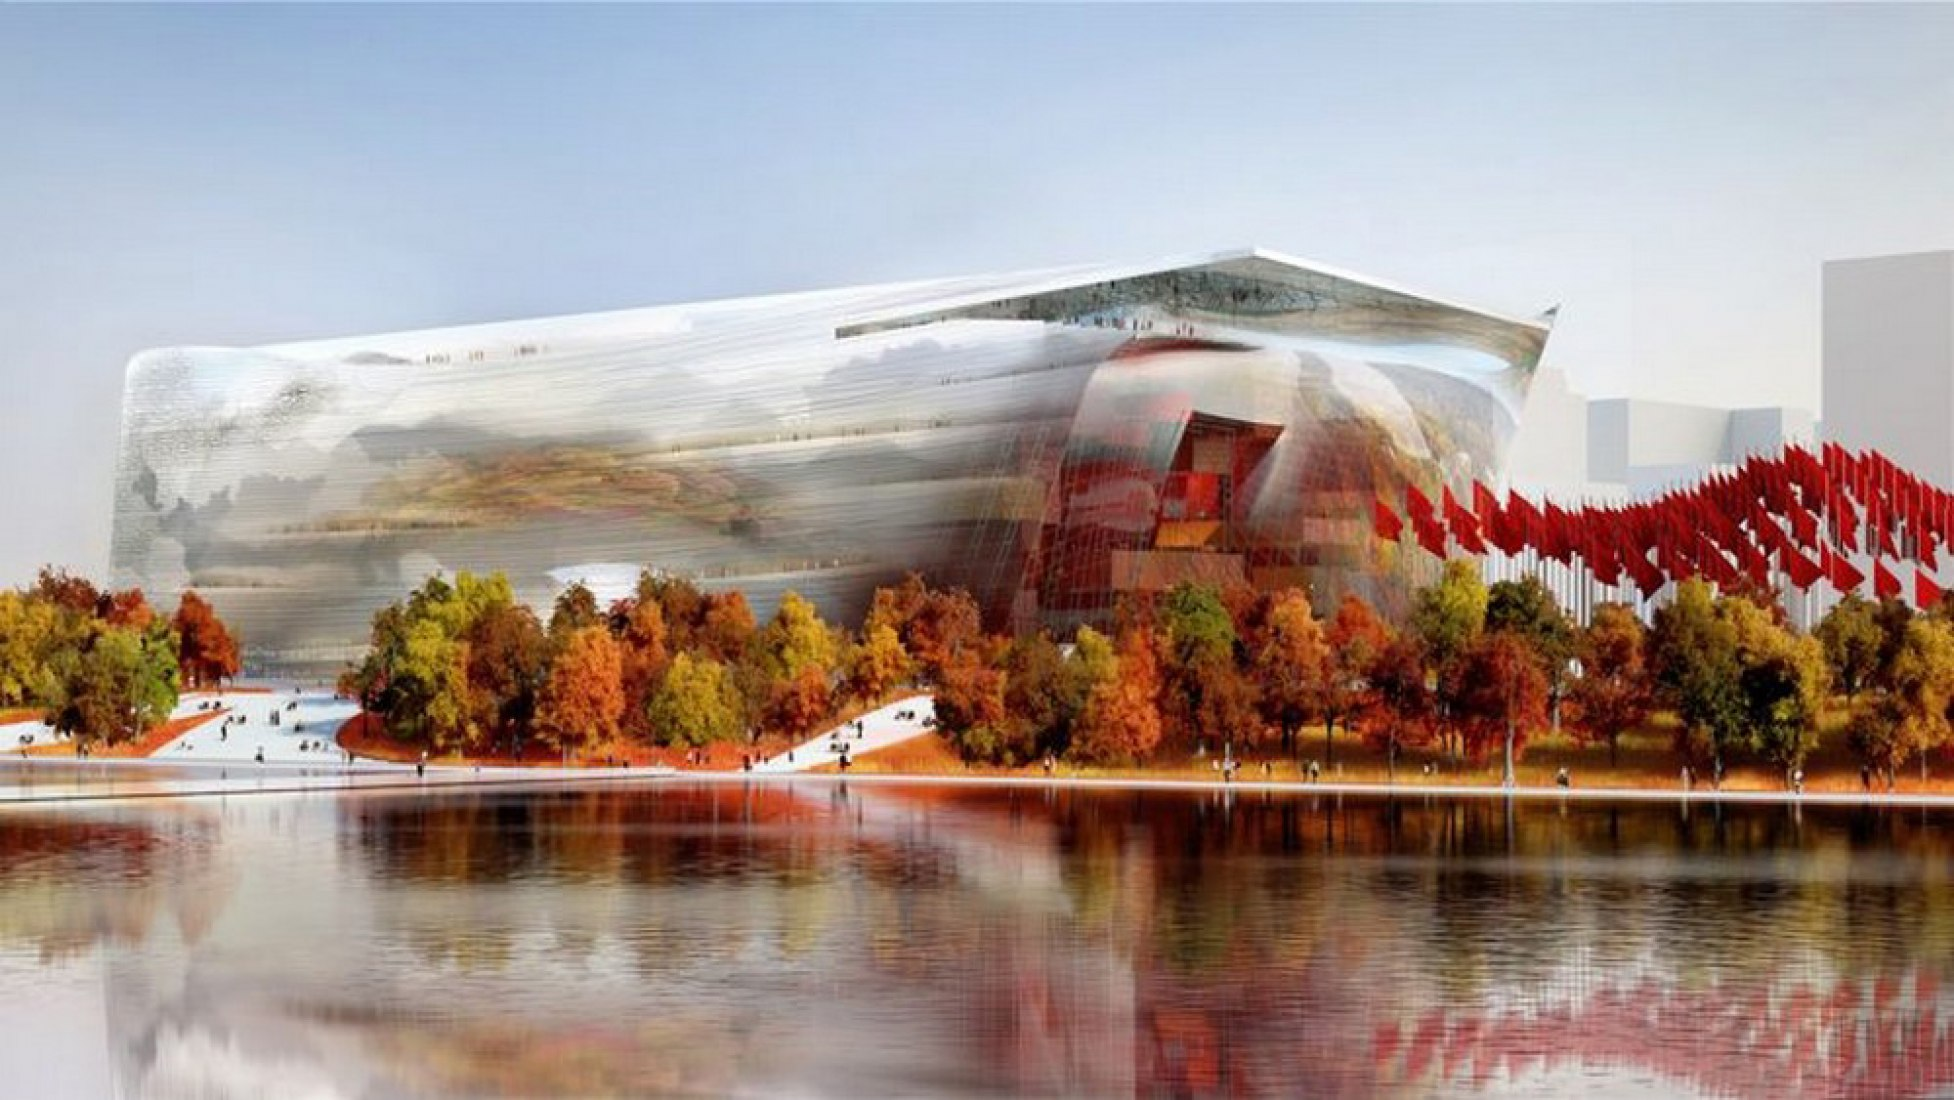 A render for Jean Nouvel's NAMOC museum. Image by Ateliers Jean Nouvel / Beijing Institute Architecture Design (BIAD).